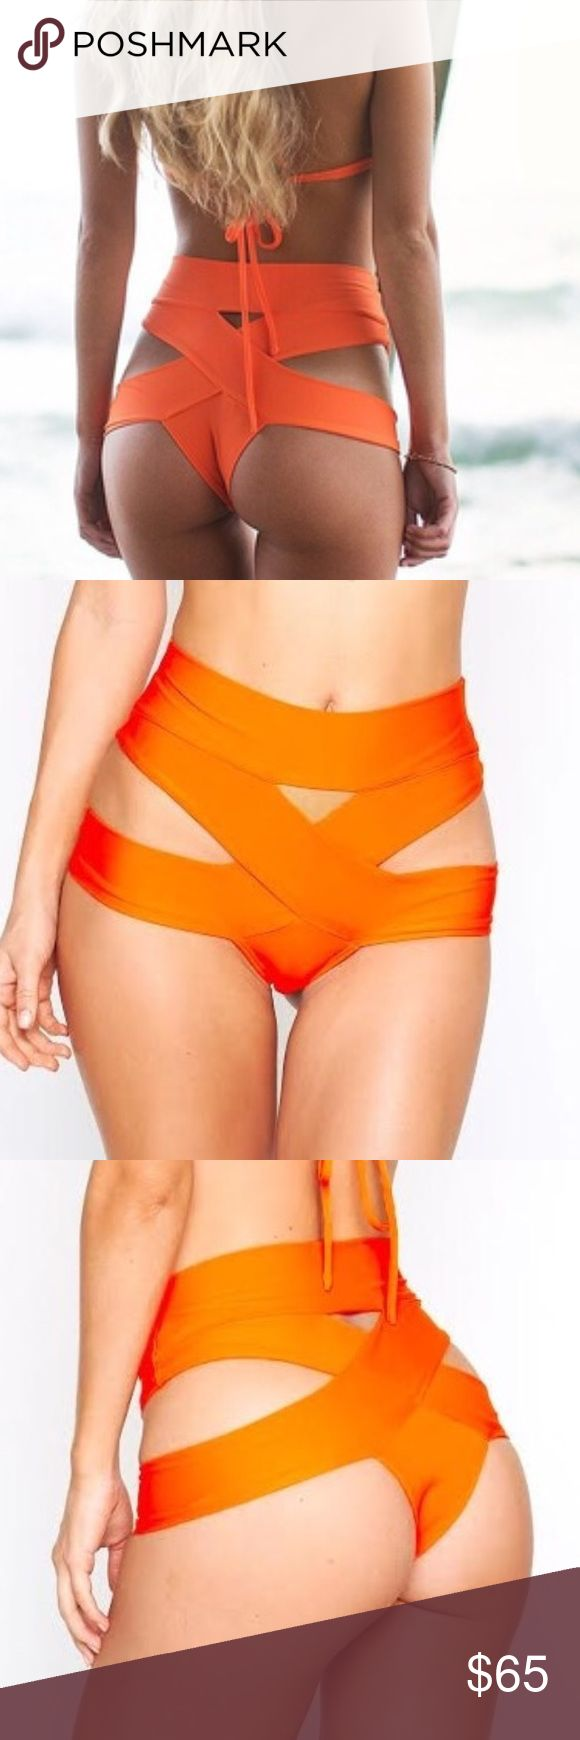 🎀Moving Sale🎀Montce Swim Naranja bikini BOTTOM Beautiful orange cross cross bottom as seen in SI swimsuit issue. NWT--never worn. It's just a bit too small for me. Please refer to the montce size chart for sizing. This listing is for the BOTTOM only. No trades please. montce swim Swim Bikinis